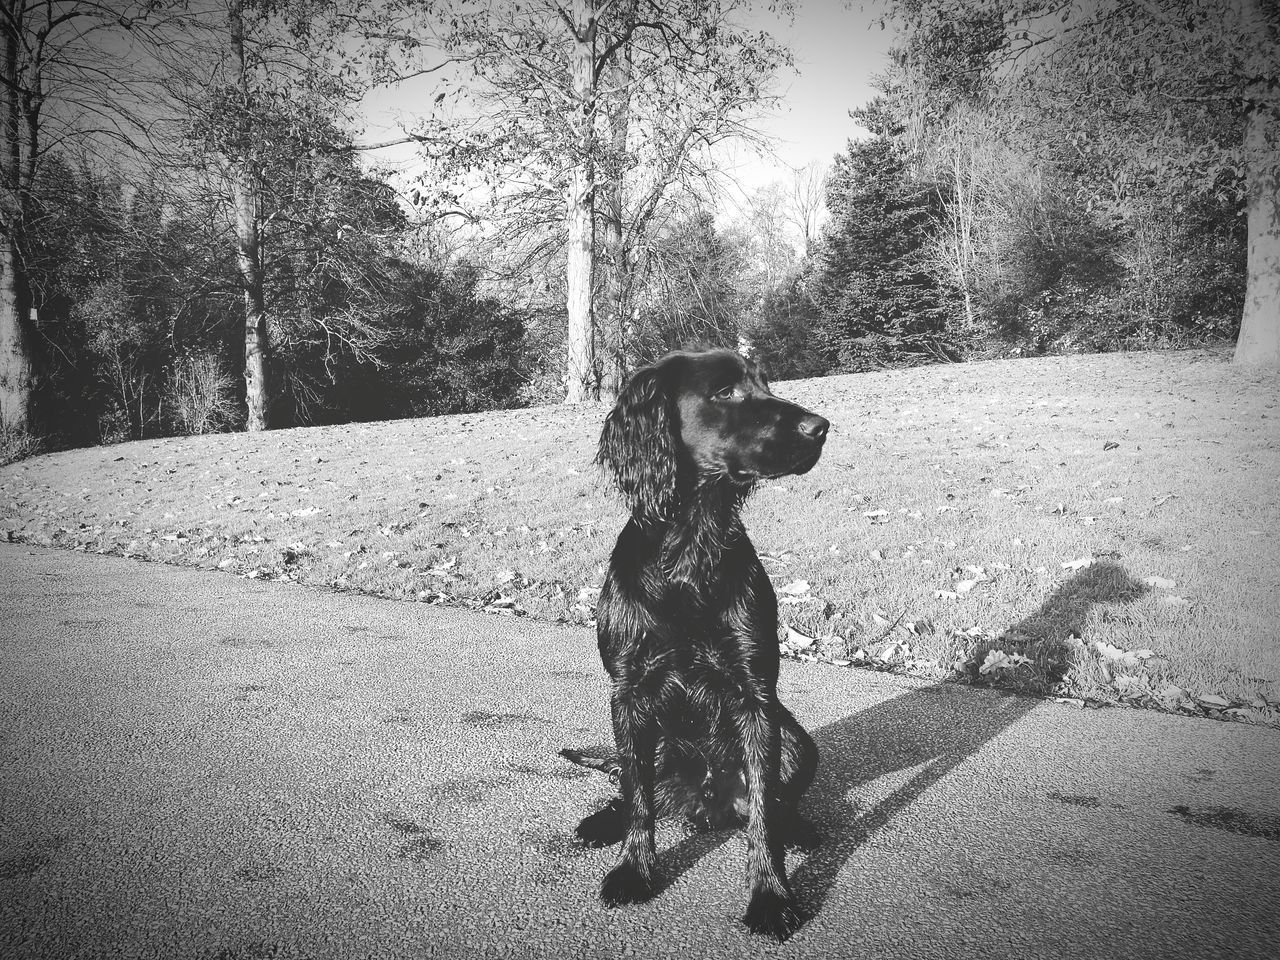 dog, pets, tree, animal themes, one animal, domestic animals, sitting, mammal, day, nature, outdoors, shadow, full length, no people, growth, sky